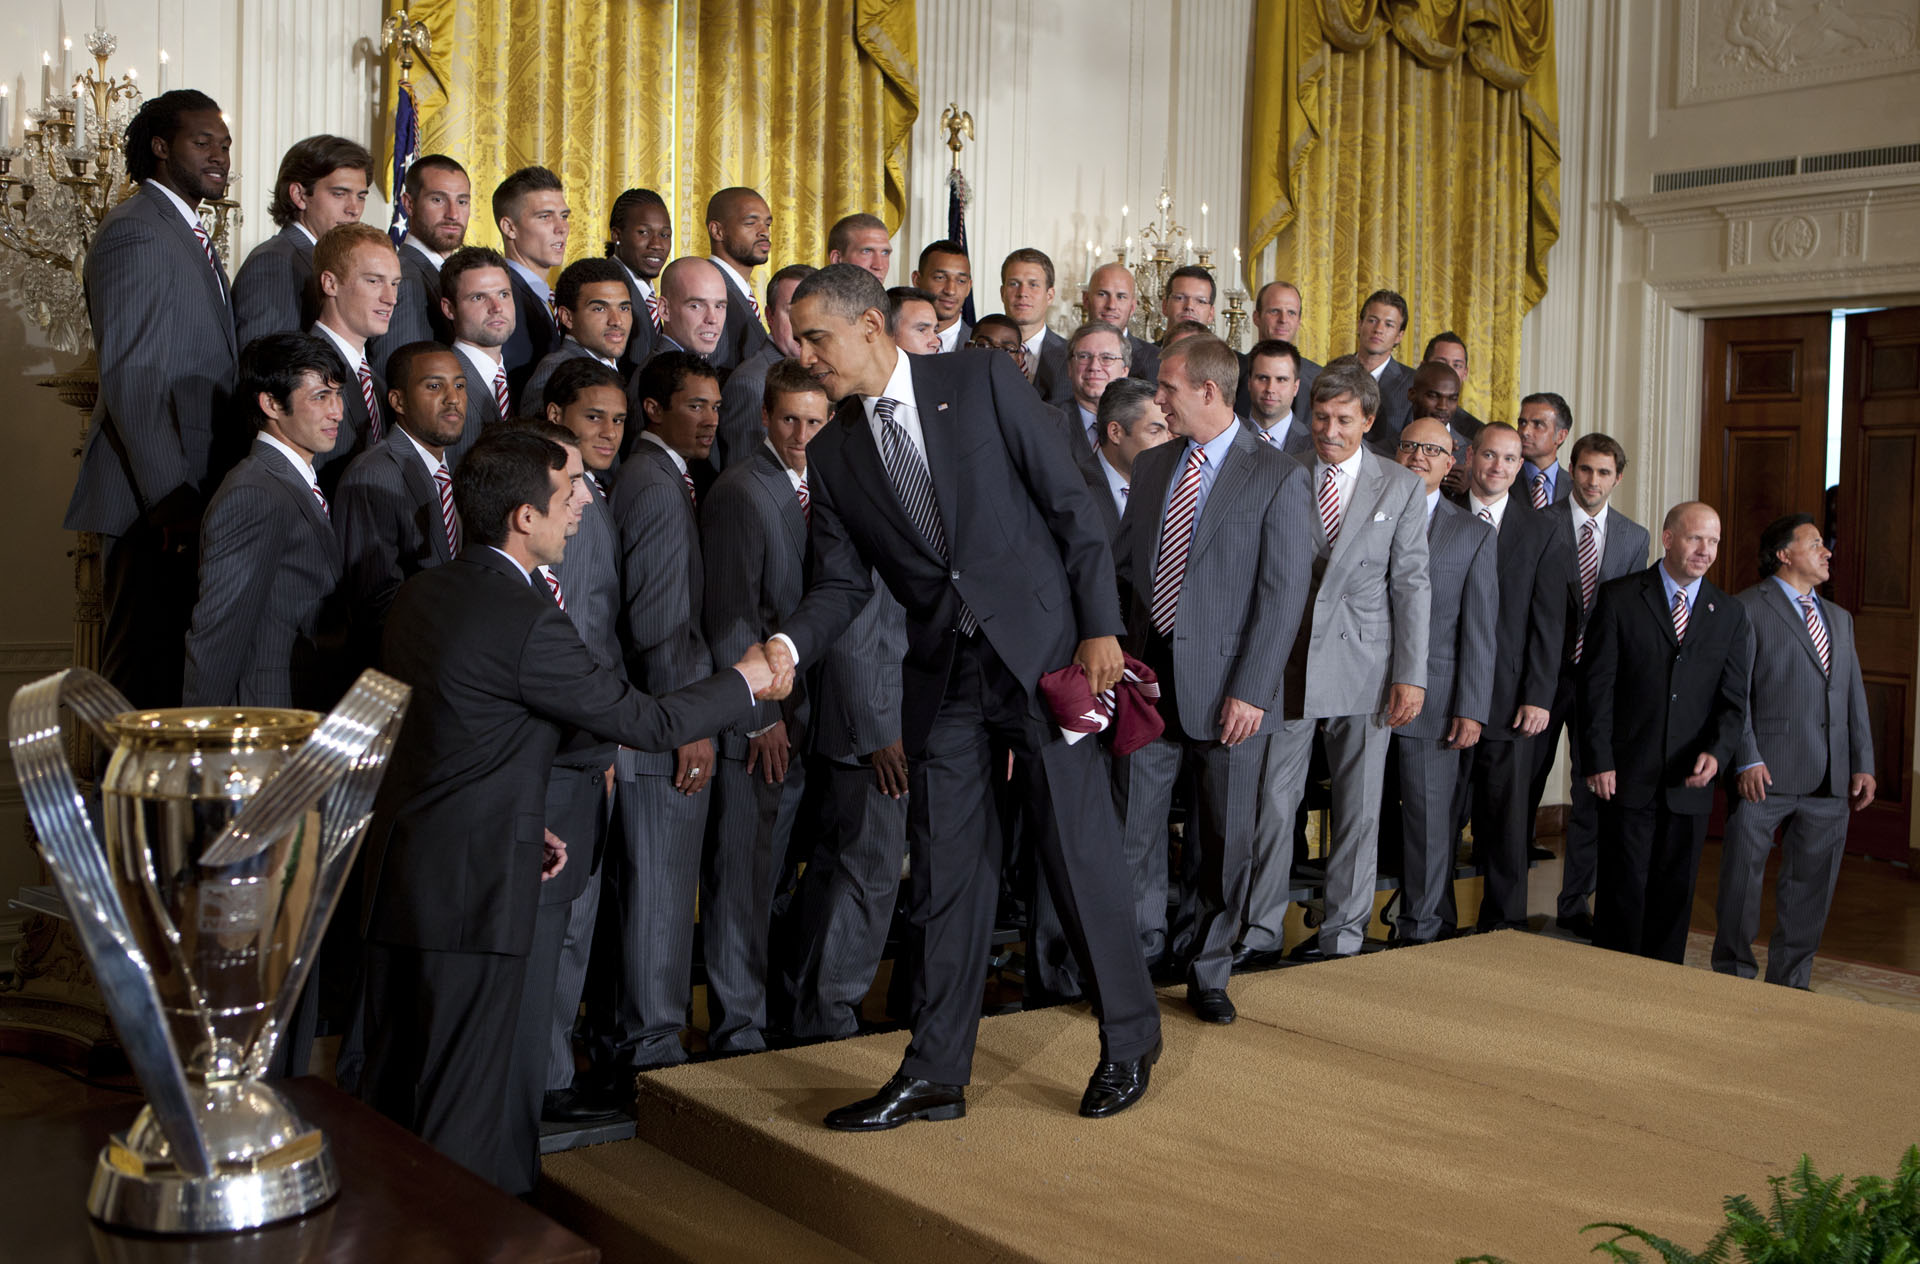 President Obama Greets the Colorado Rapids